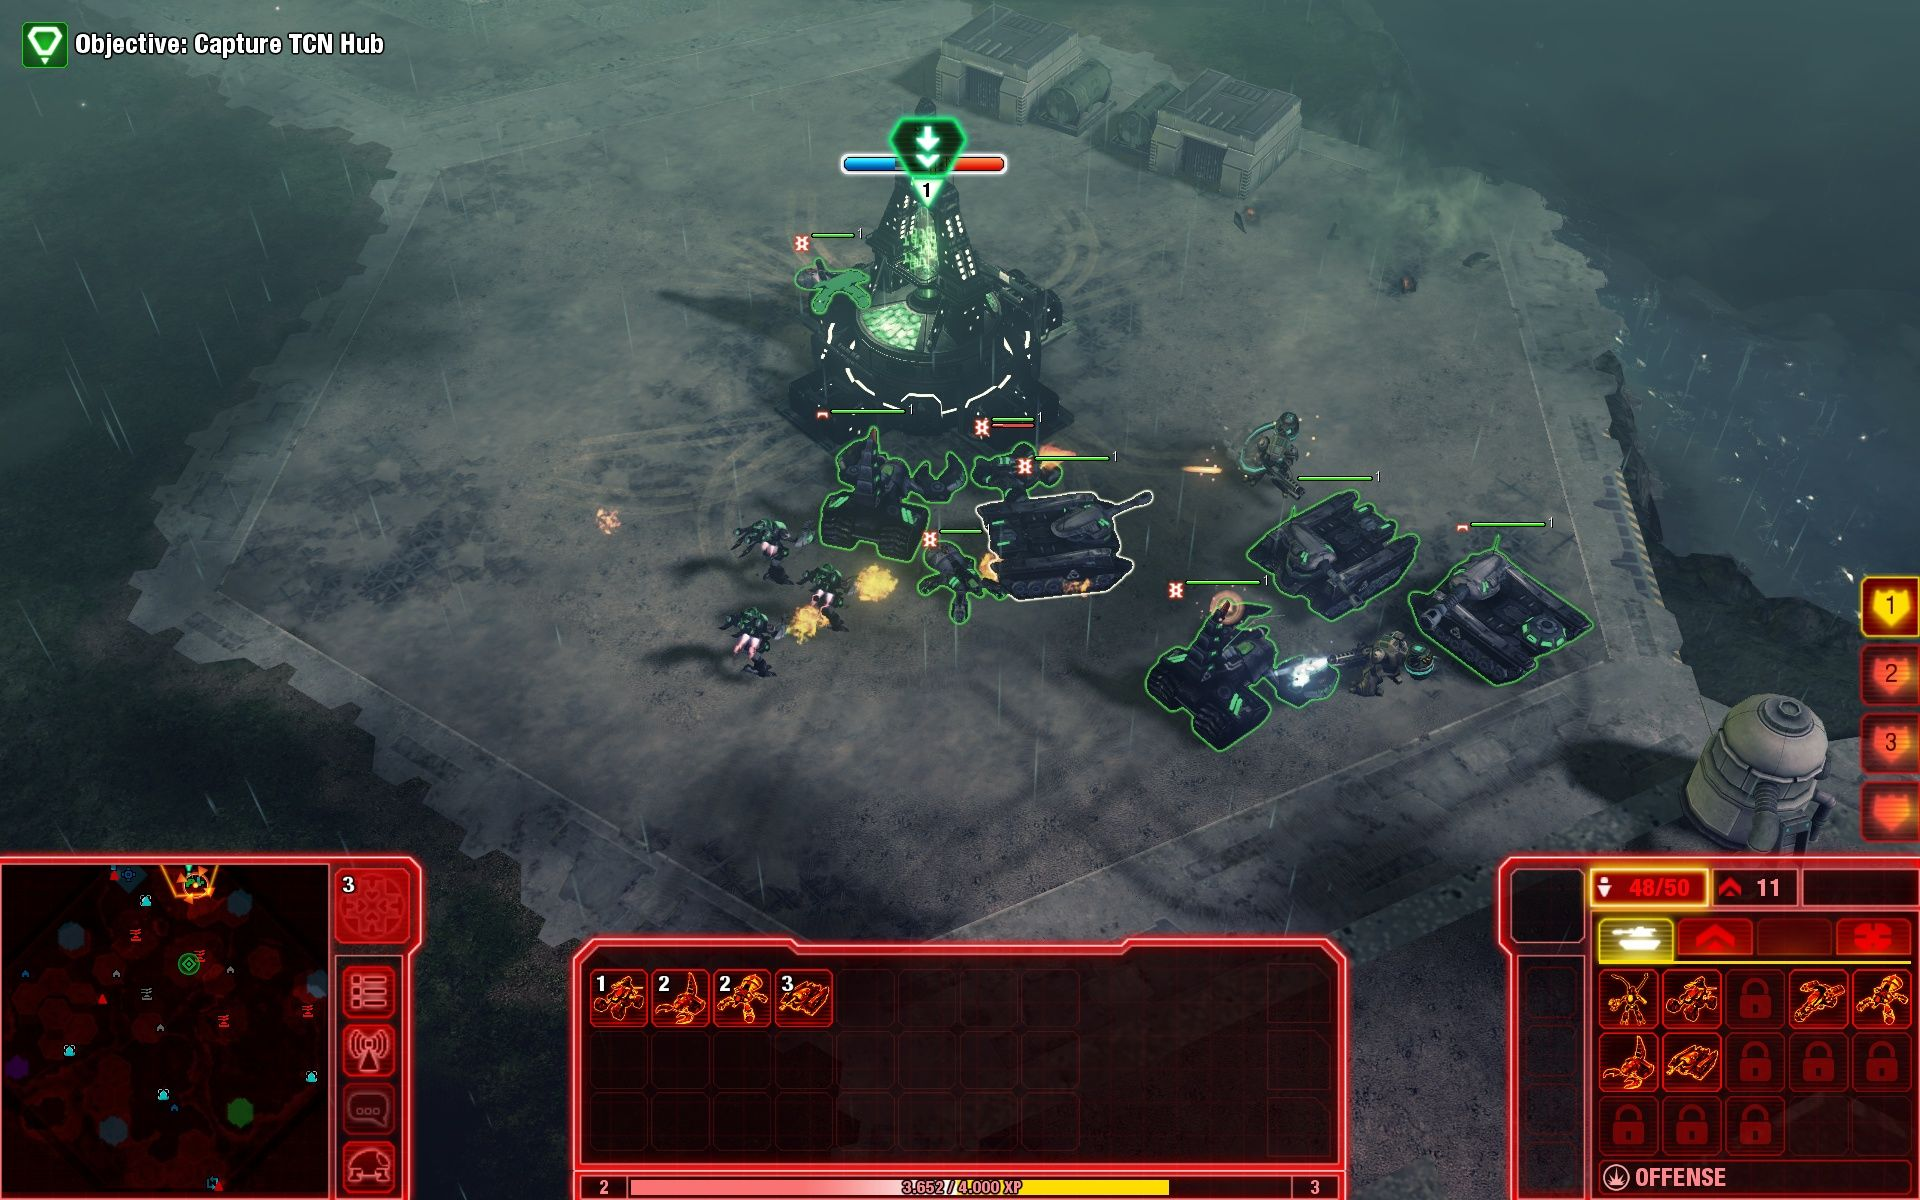 Command & Conquer 4: Tiberian Twilight Windows A TCN Hub being captured for NOD.